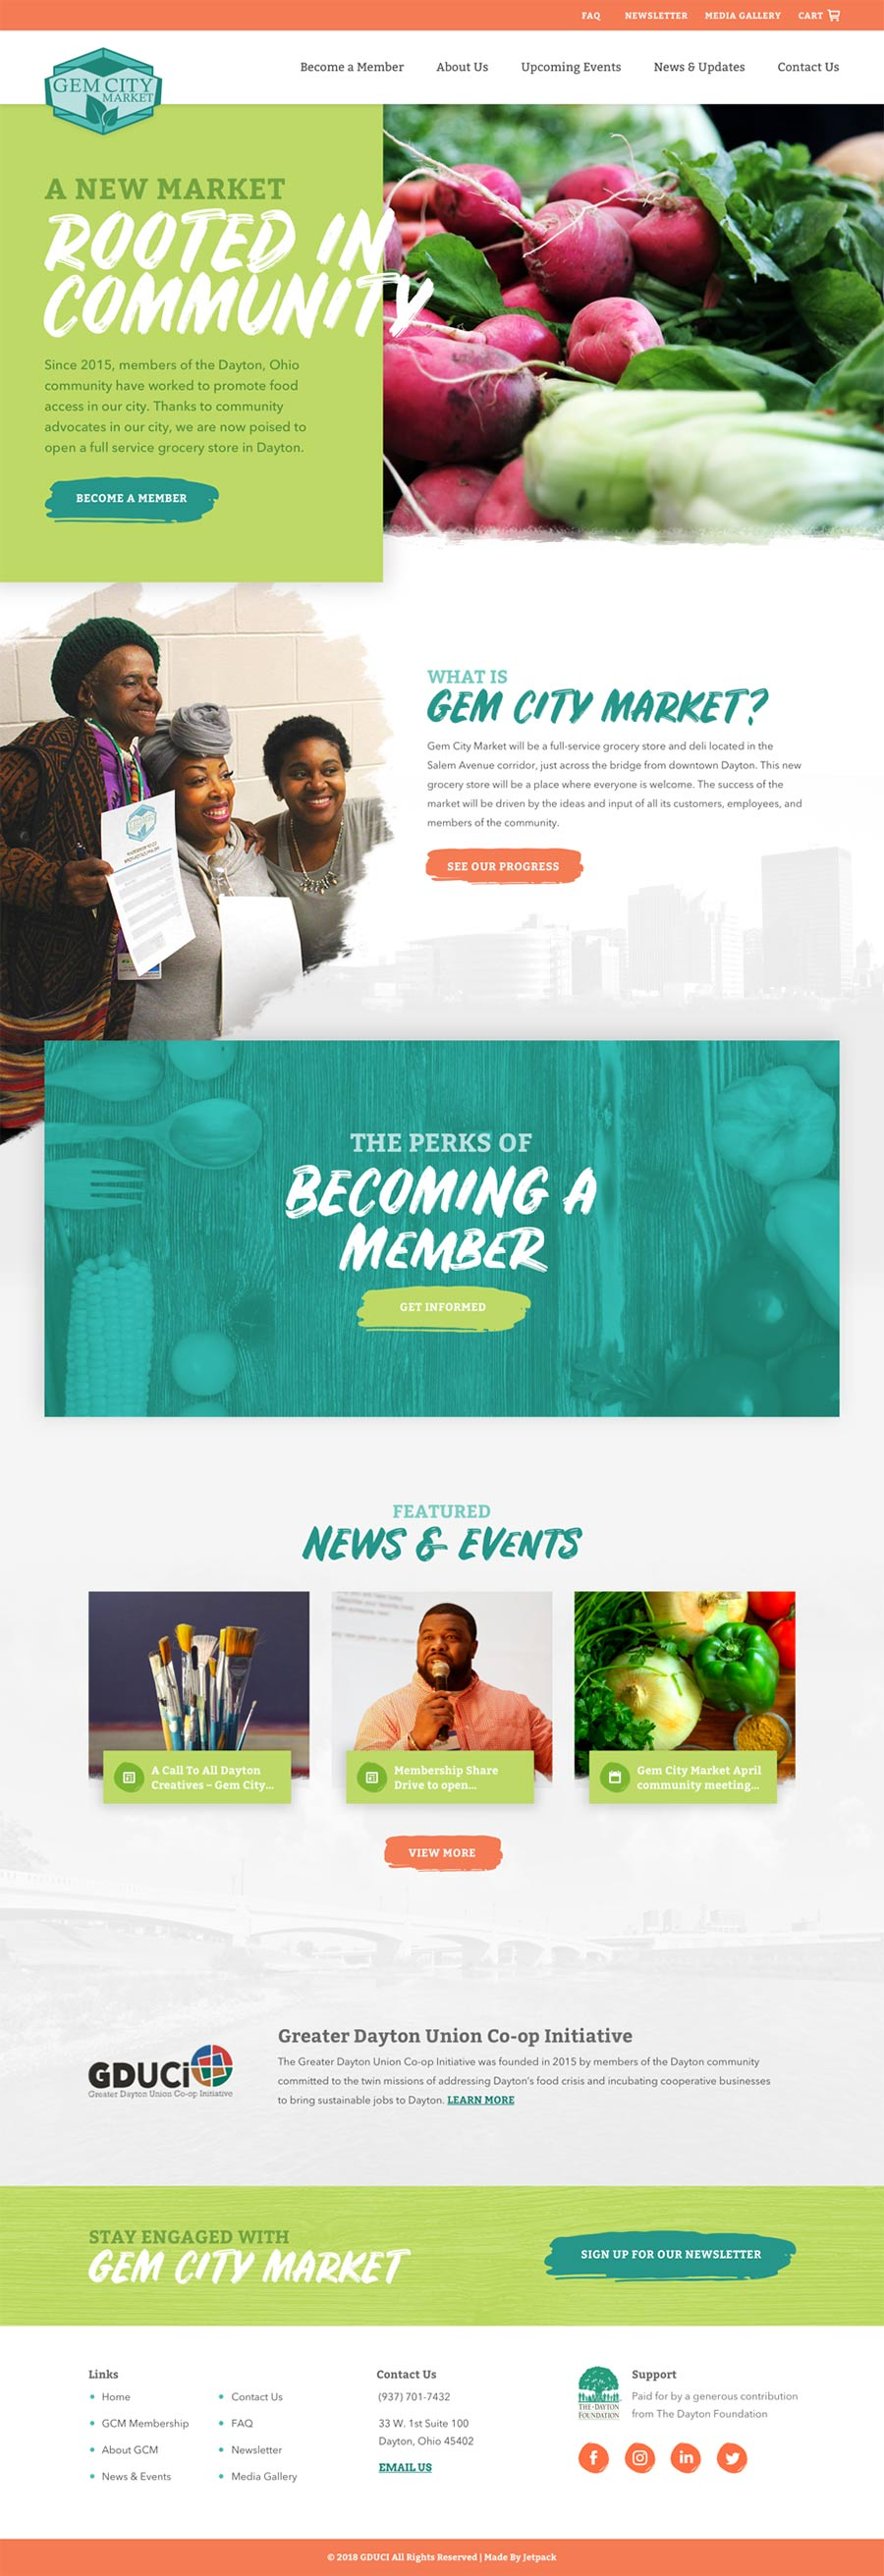 Gem City Market Website - Full Screenshot